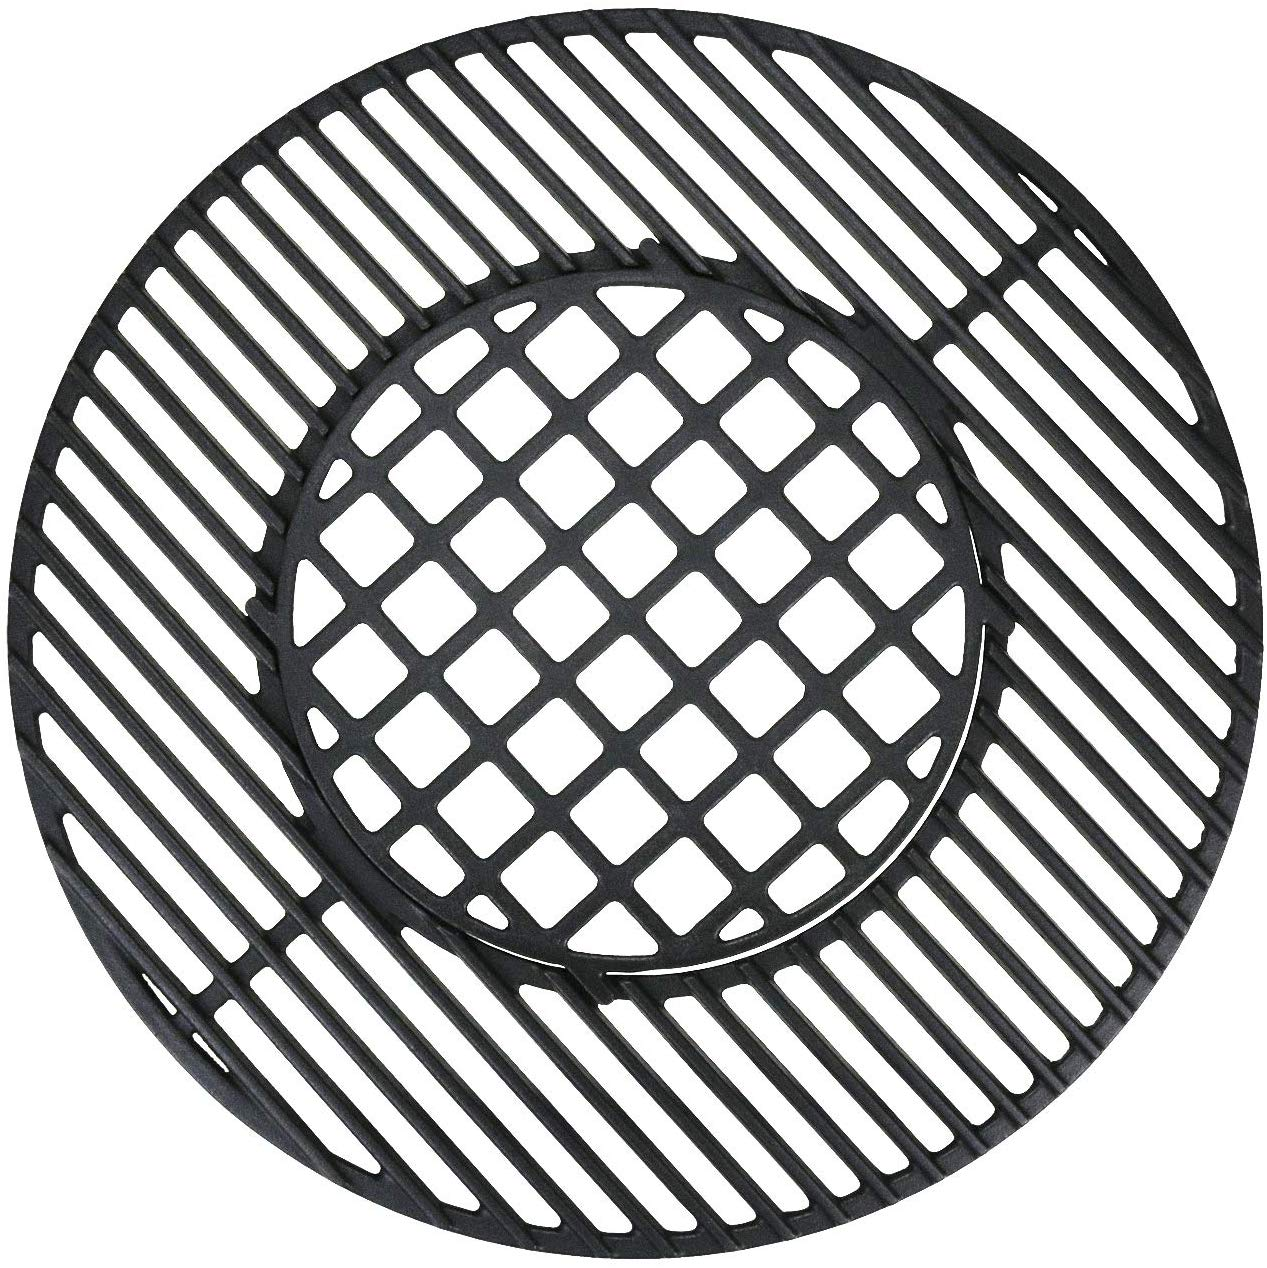 Cast Iron Gourmet Bbq System Cooking Grate For 22 1 2